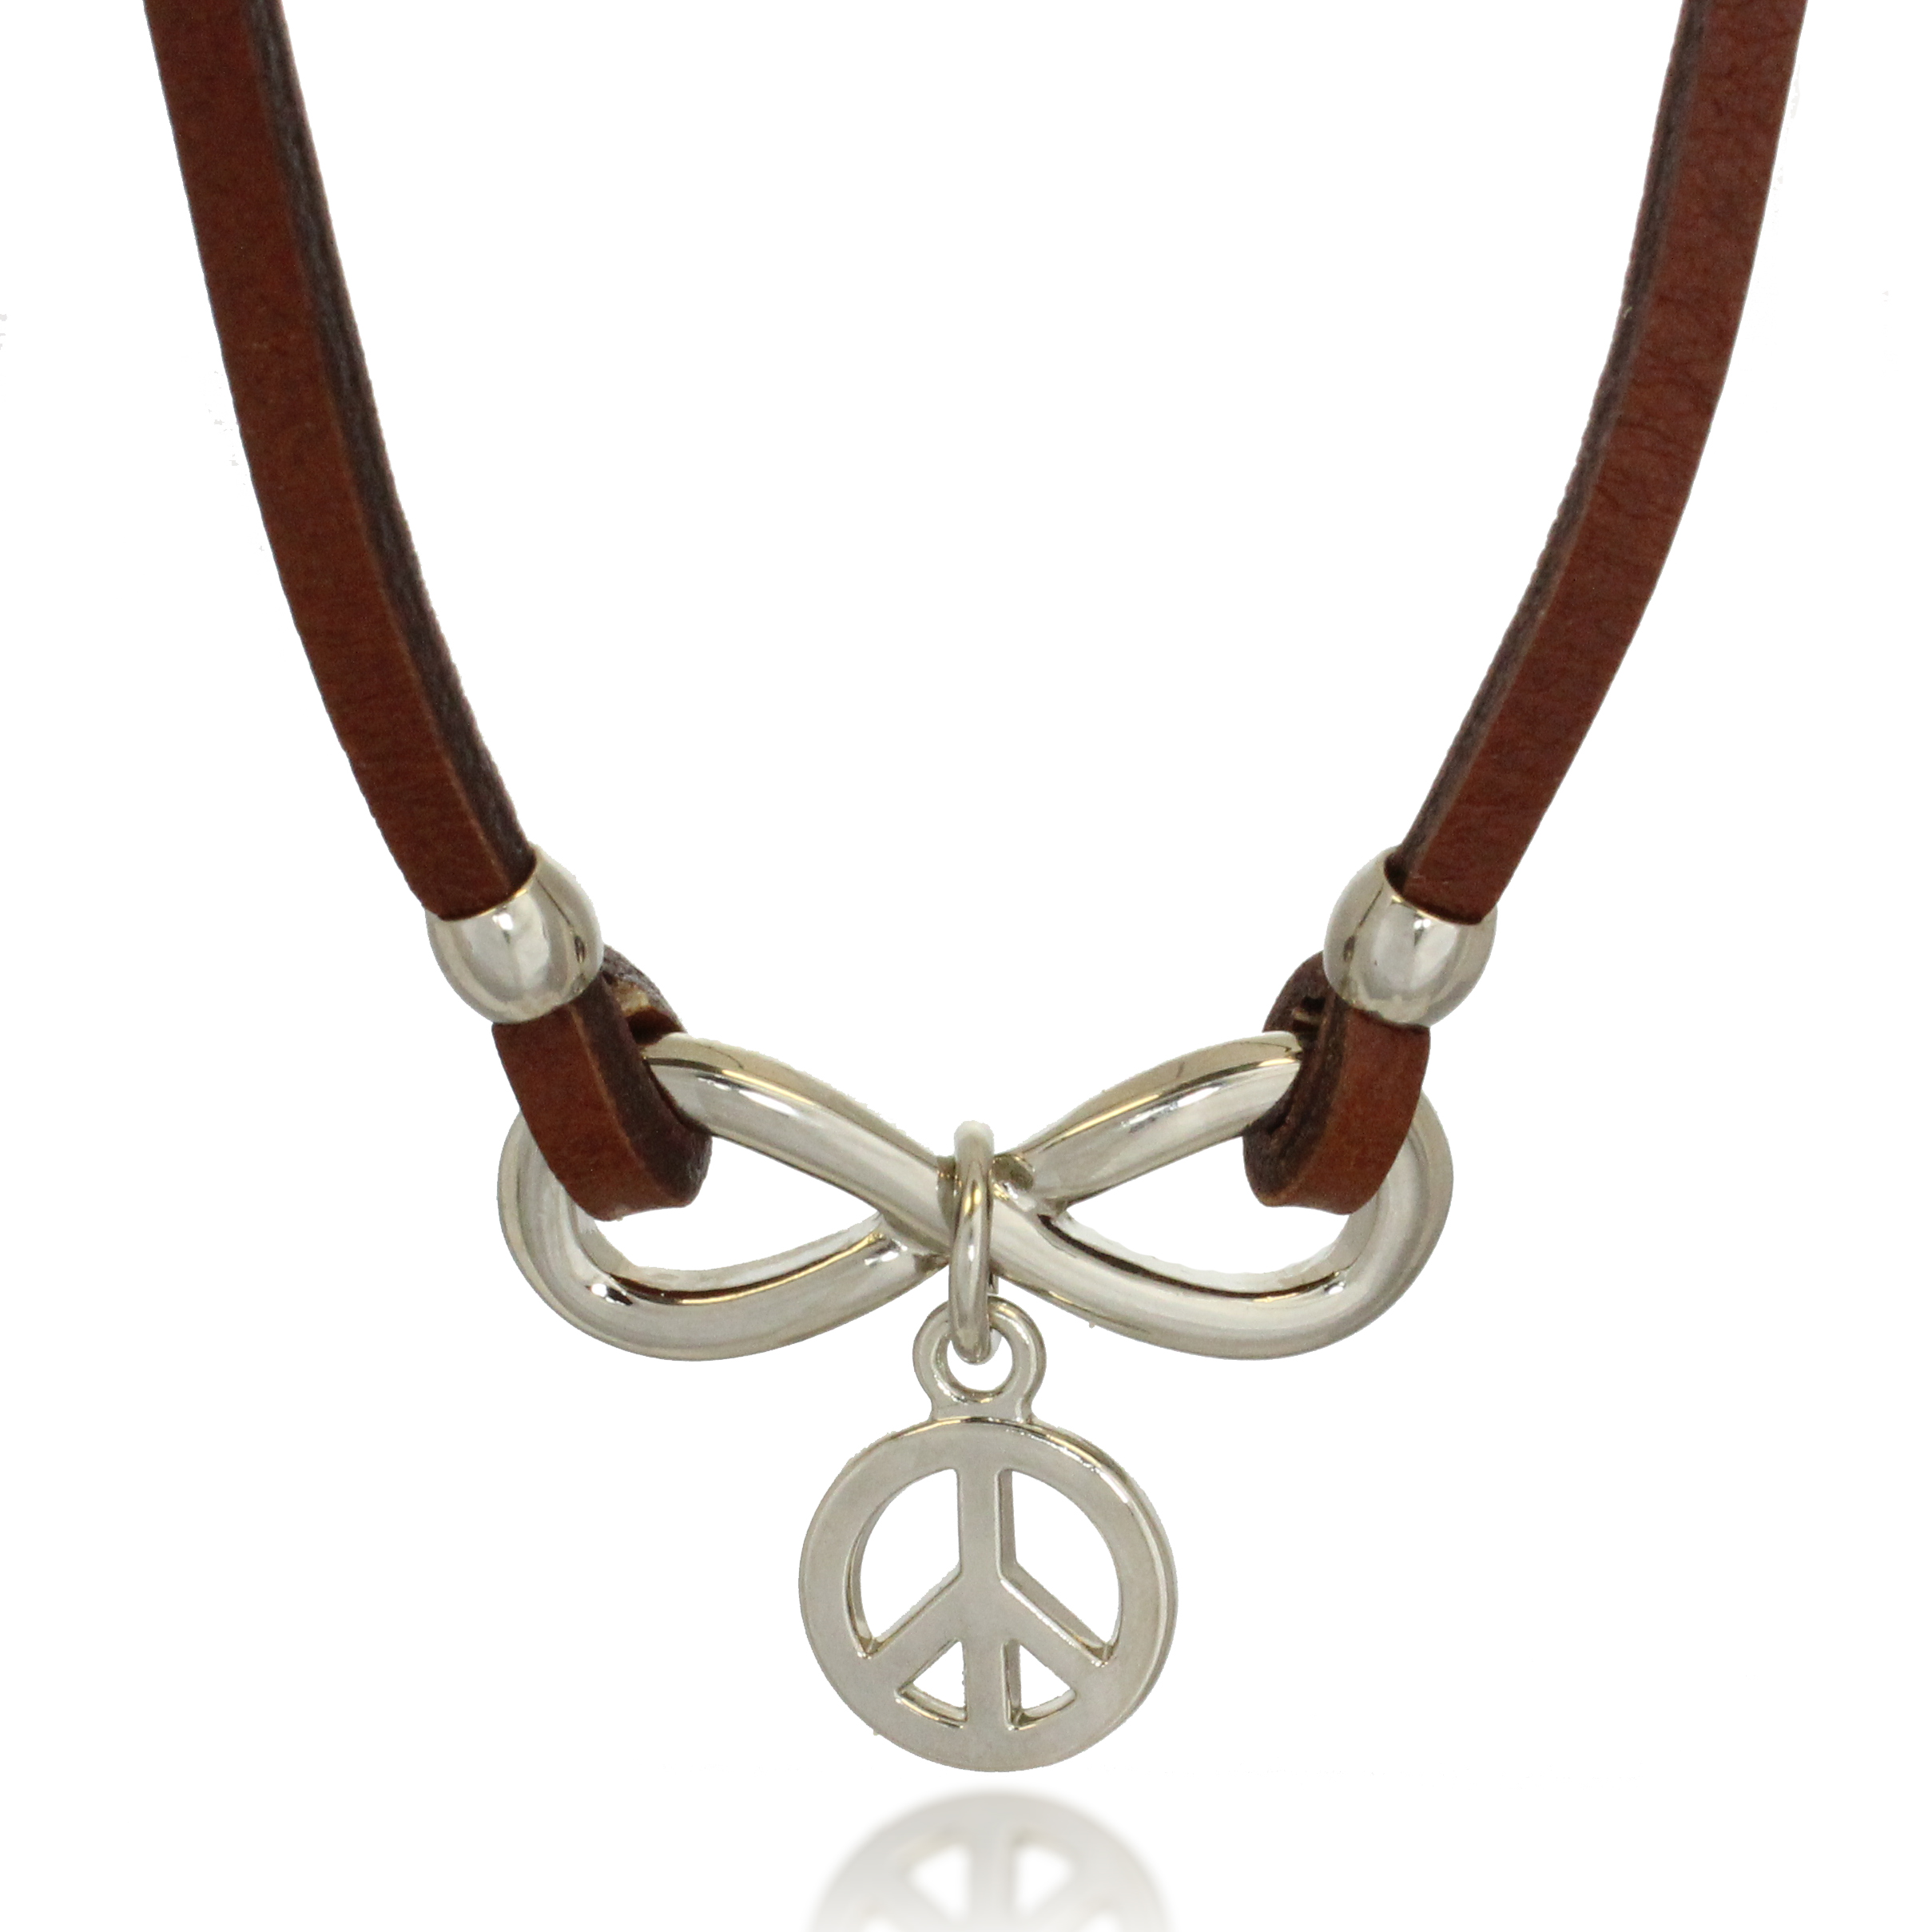 Stainless Steel and Brown Leather Horizonal Infinity Peace Charm Pendant Necklace, 20 inches